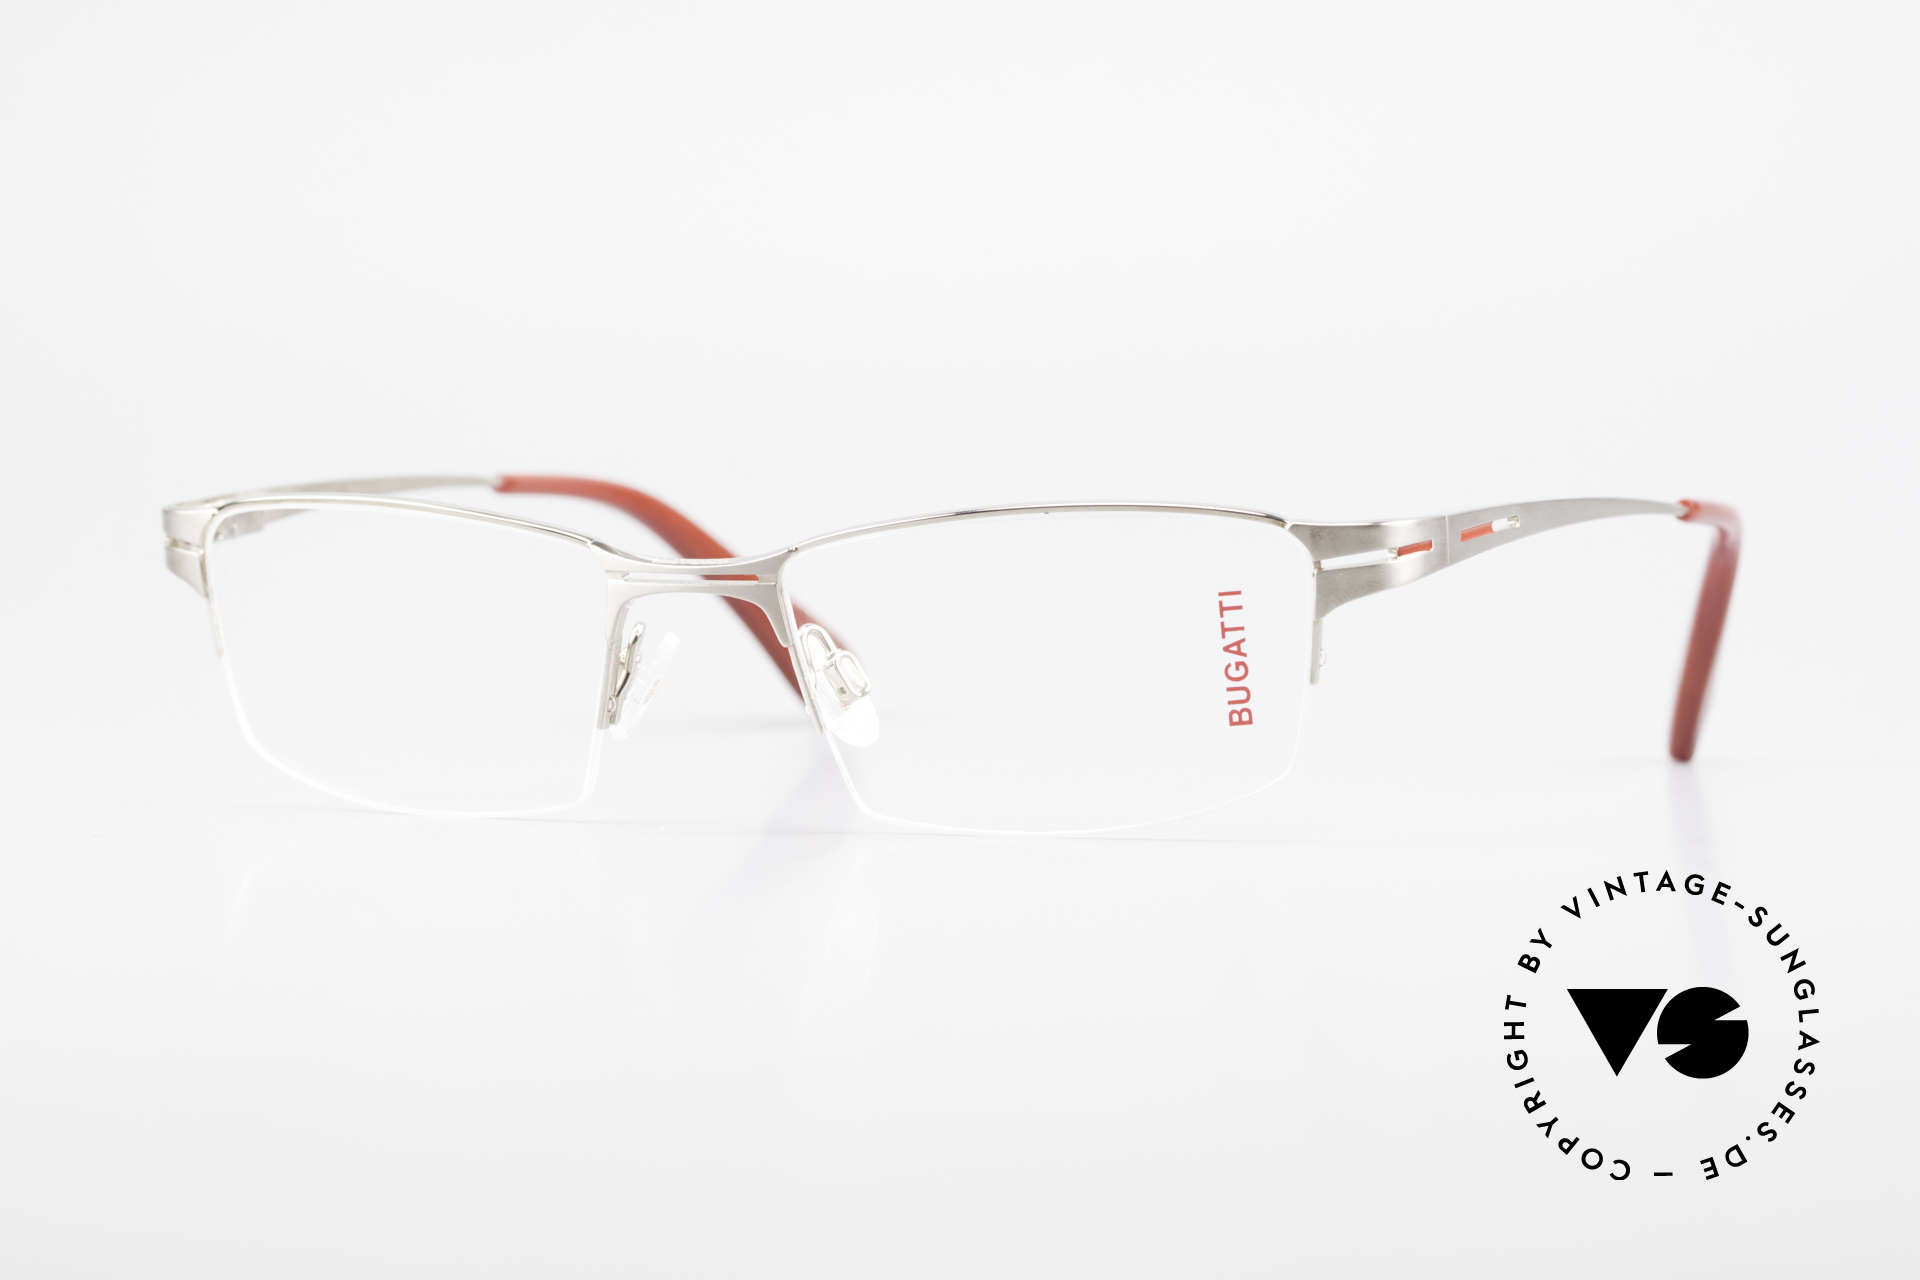 Bugatti 456 Nylor Titan Frame Palladium, original, vintage NYLOR eyeglass-frame by Bugatti, Made for Men